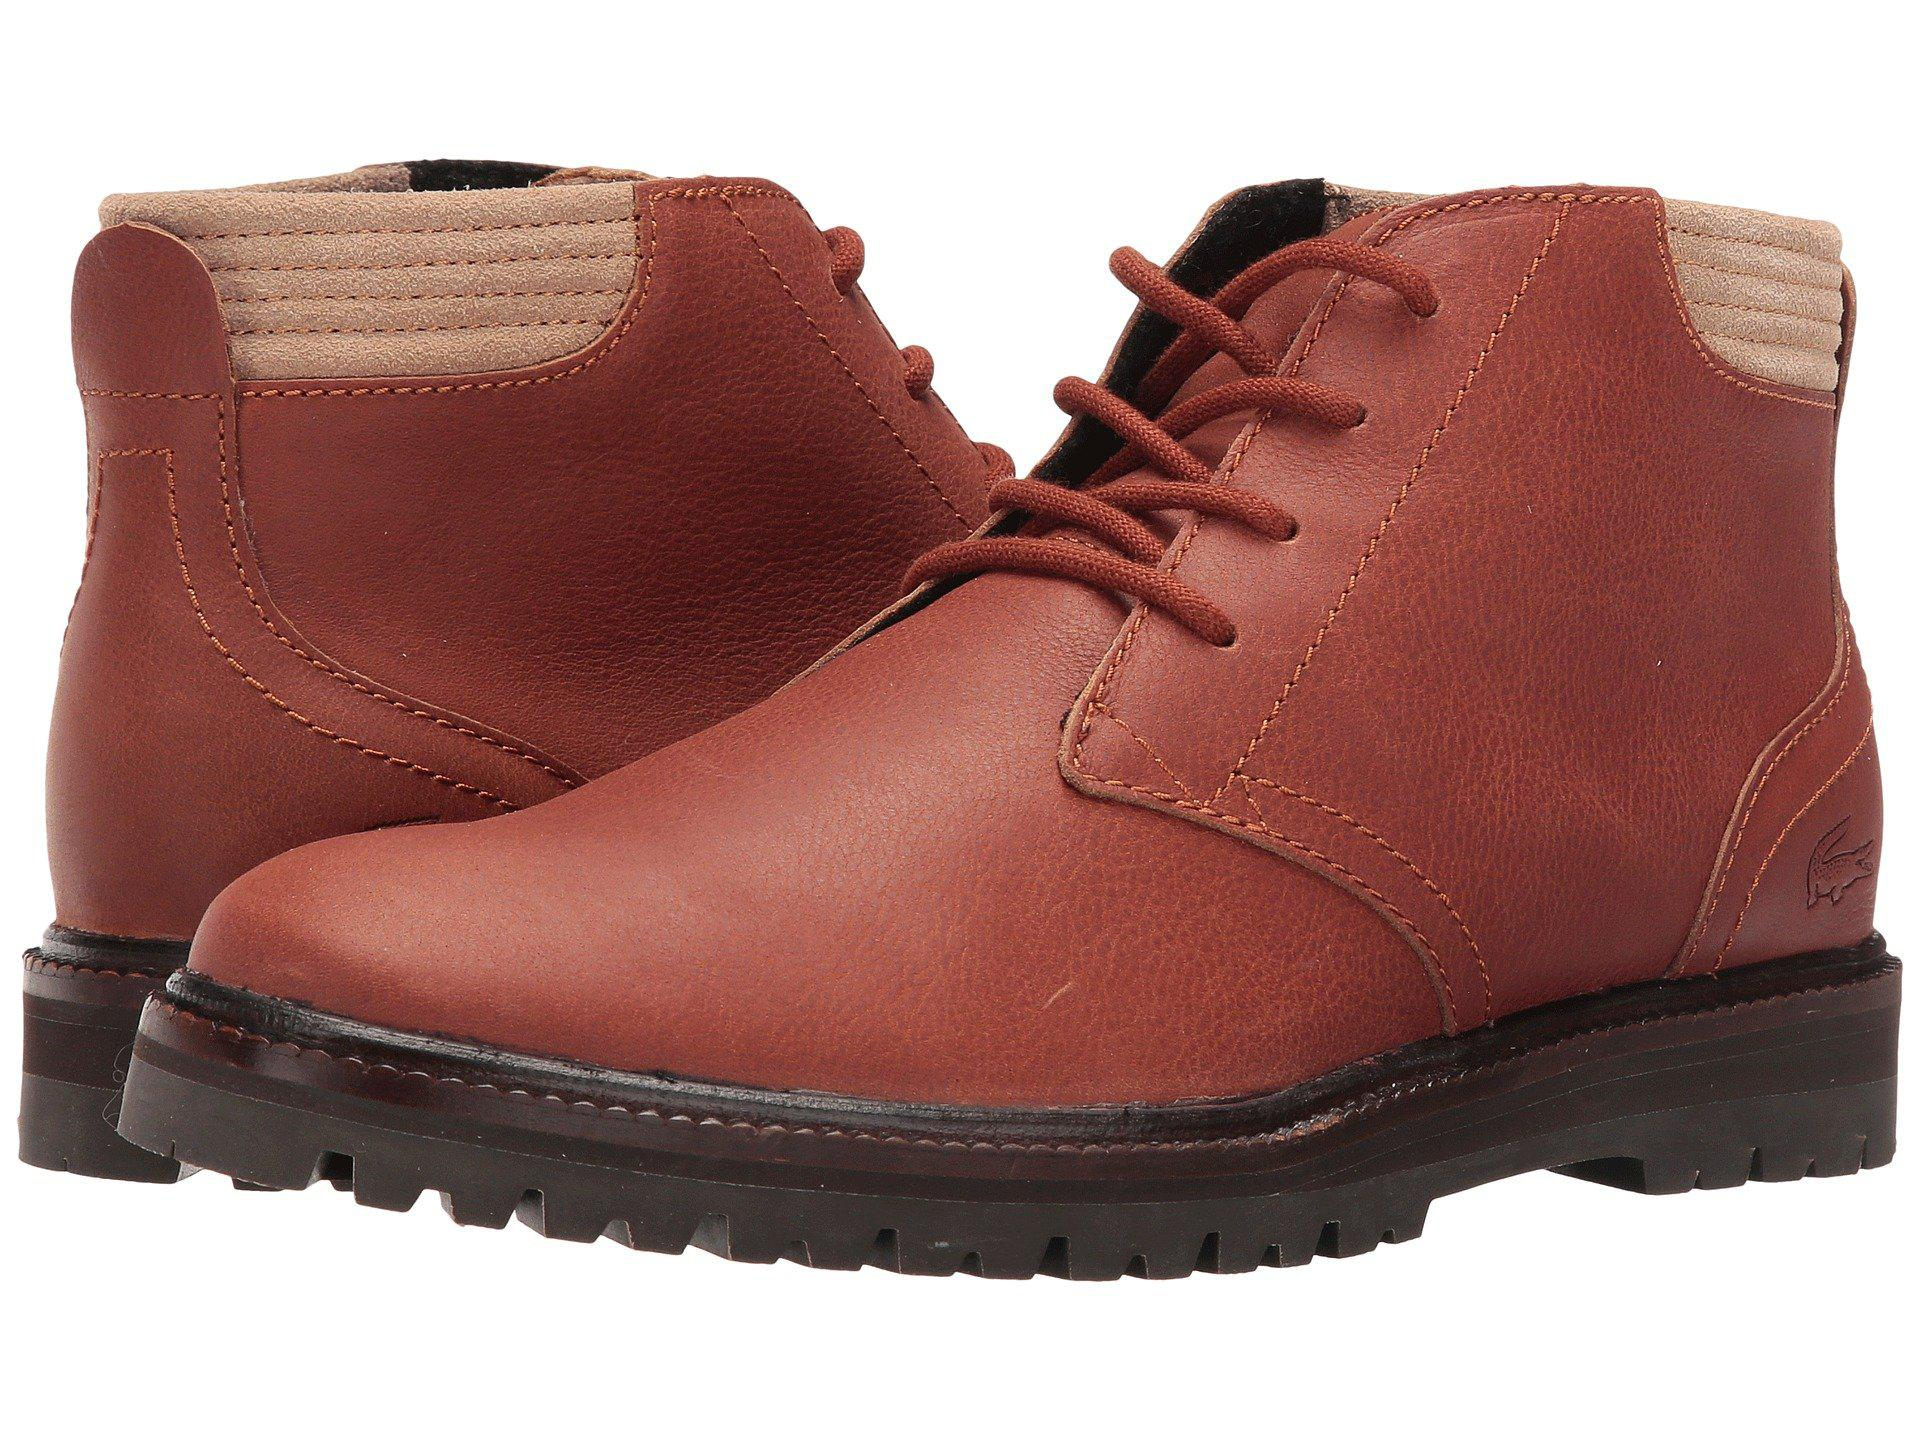 ffcffa3445c3f1 Lyst - Lacoste Montbard Chukka 416 1 in Brown for Men - Save 14%